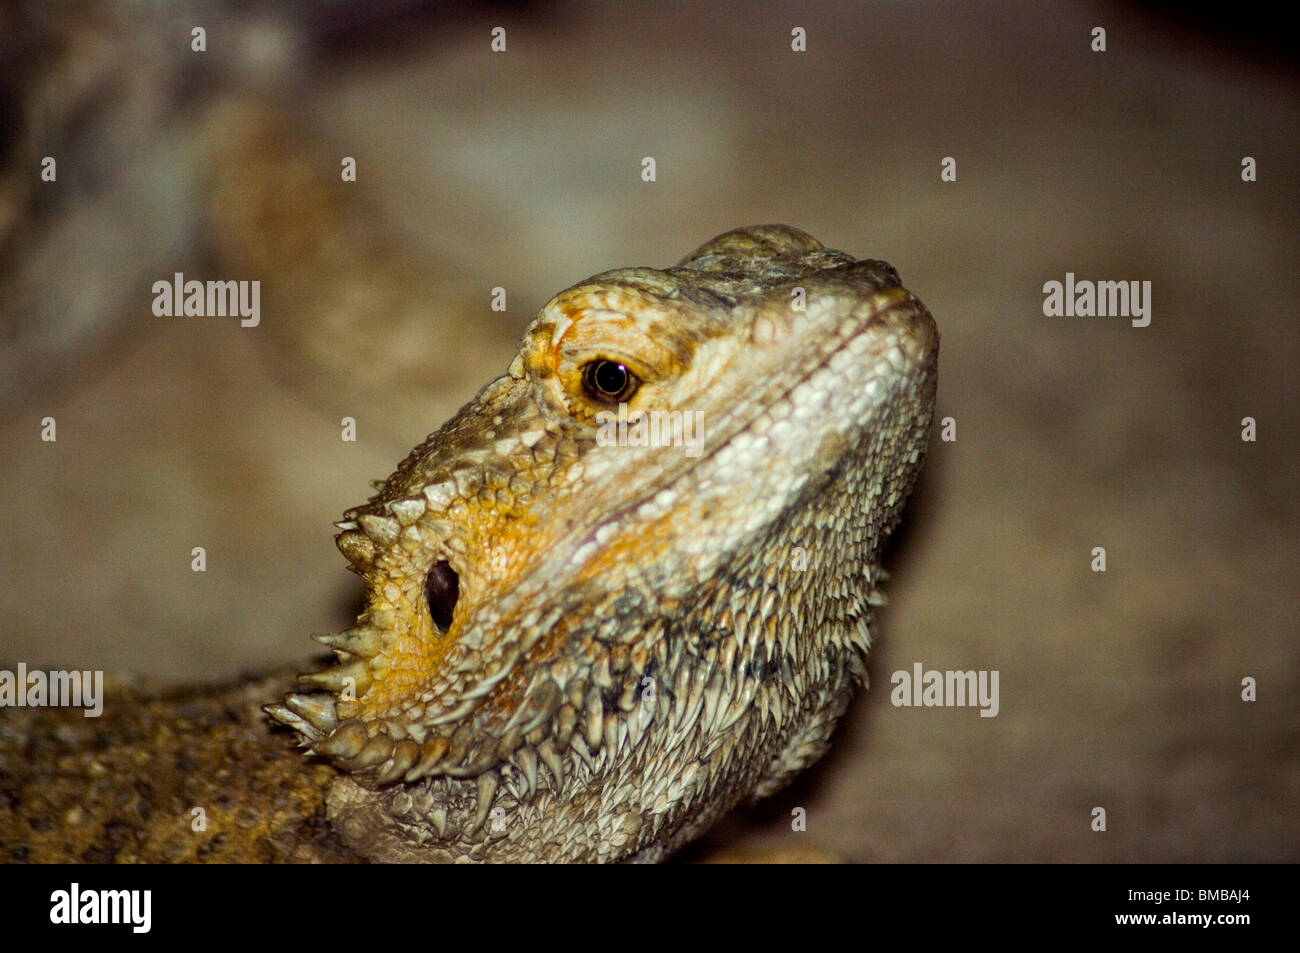 Bearded dragon in the foreground again with evidence of his black bag placed under the mouth that inflates when - Stock Image